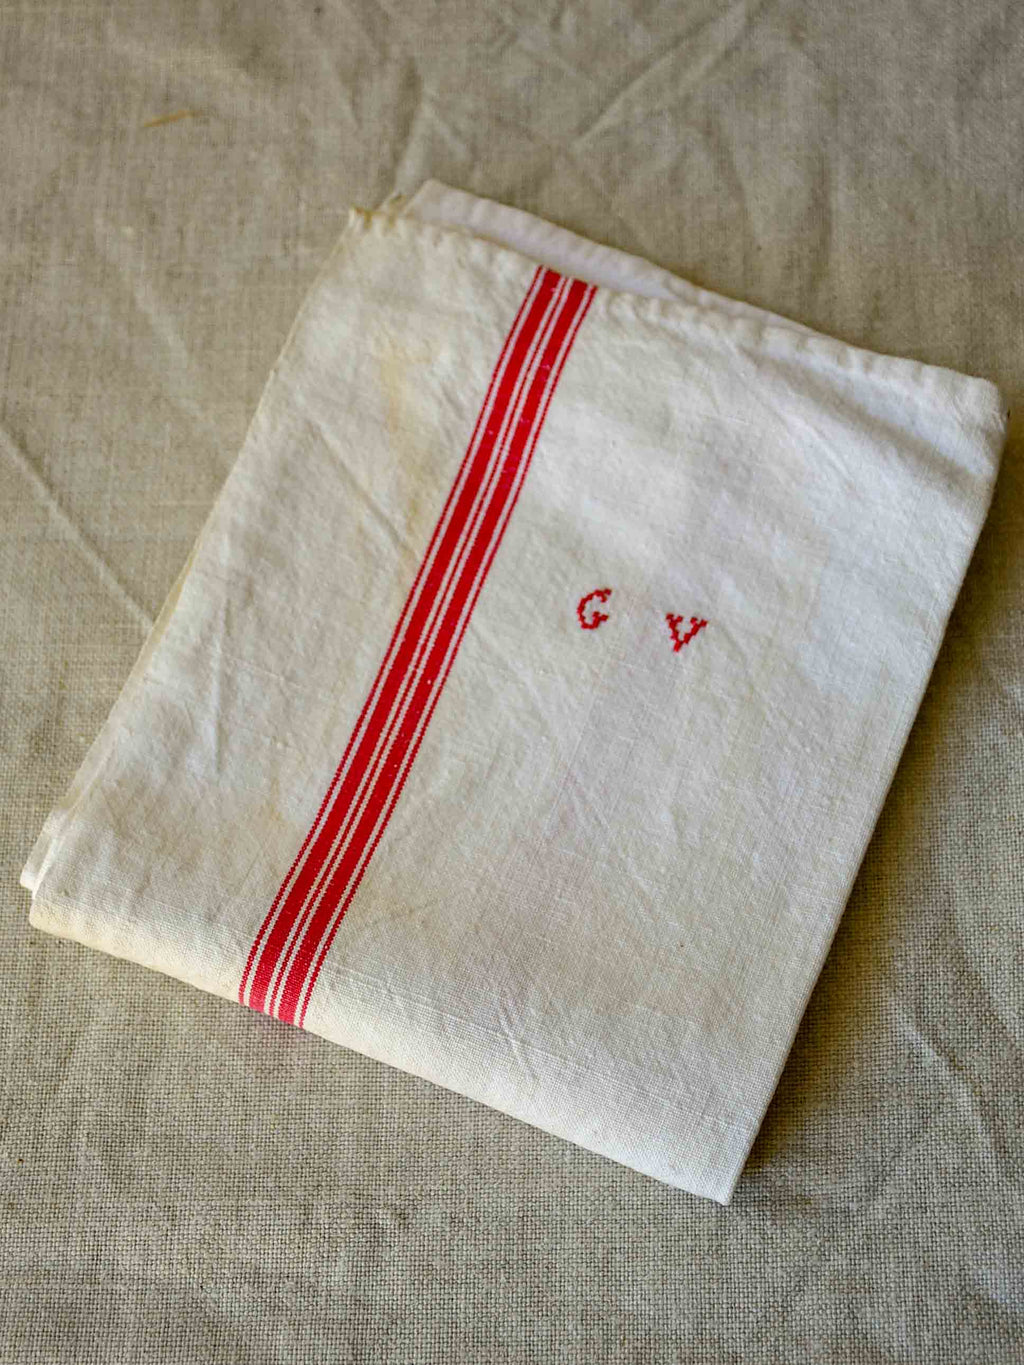 Antique French tea towel with GV monogram